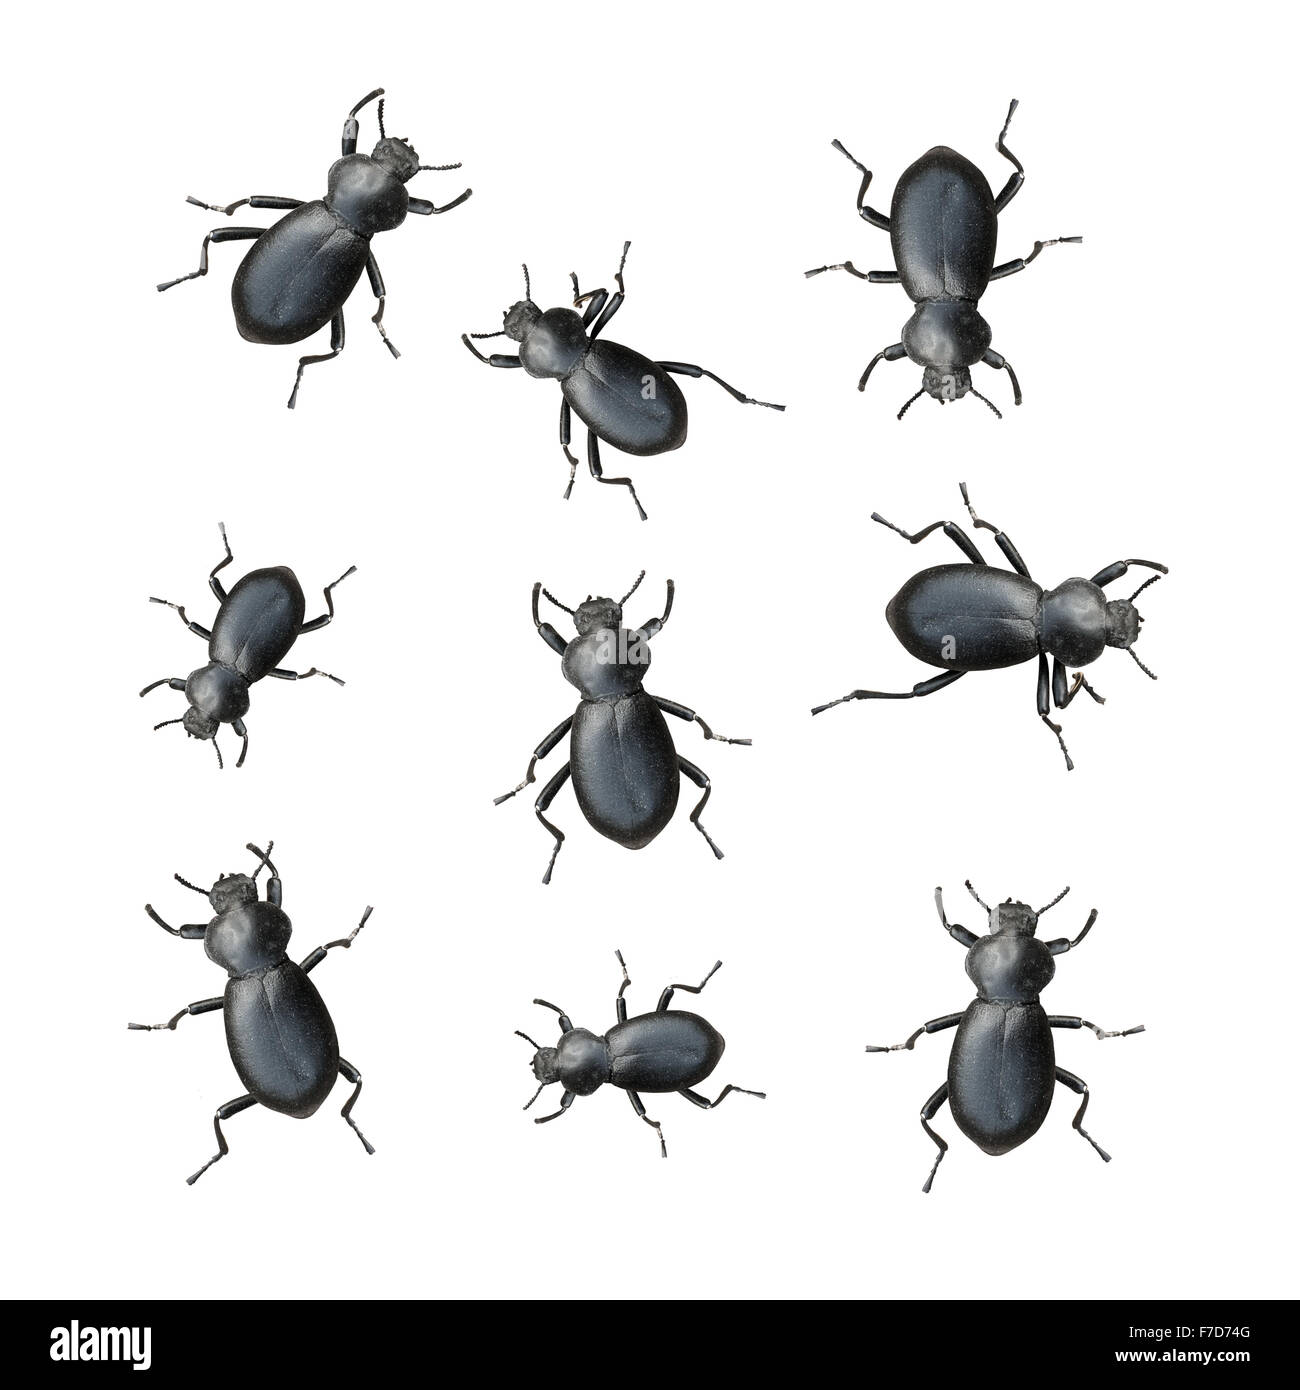 Creepy Crawly Black Beetles On A White Background - Stock Image